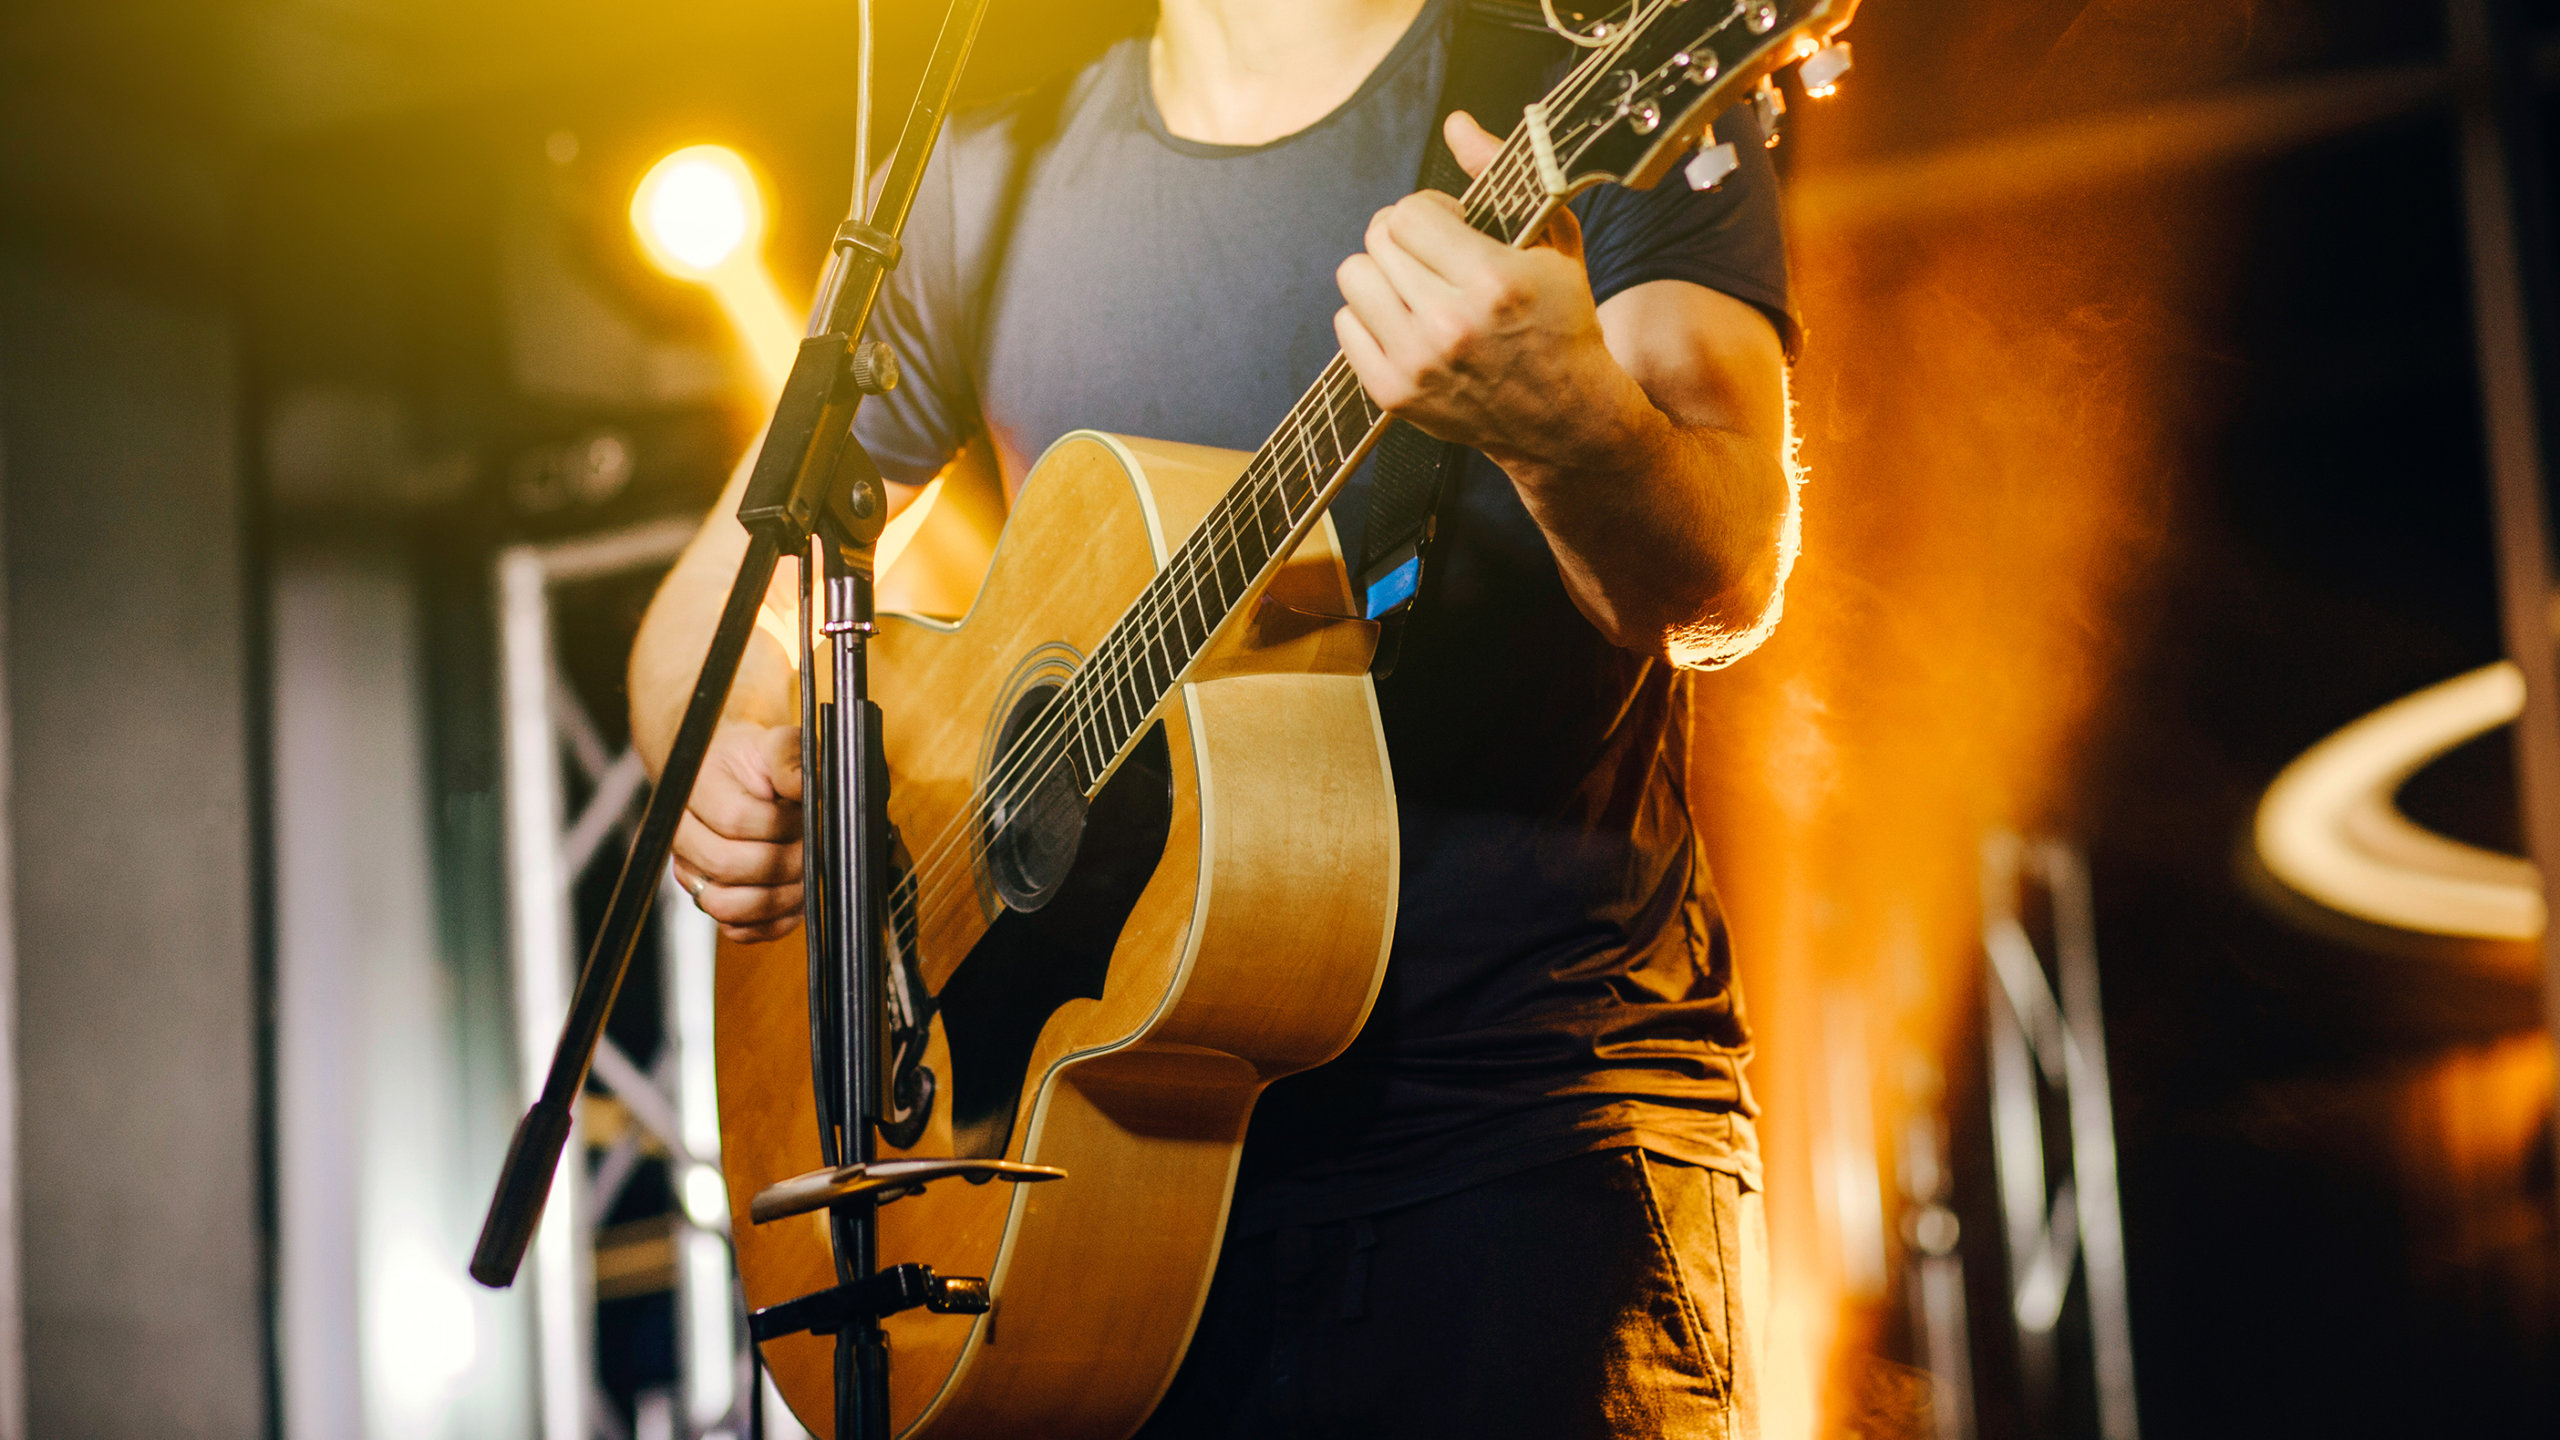 How to choose and buy an acoustic guitar